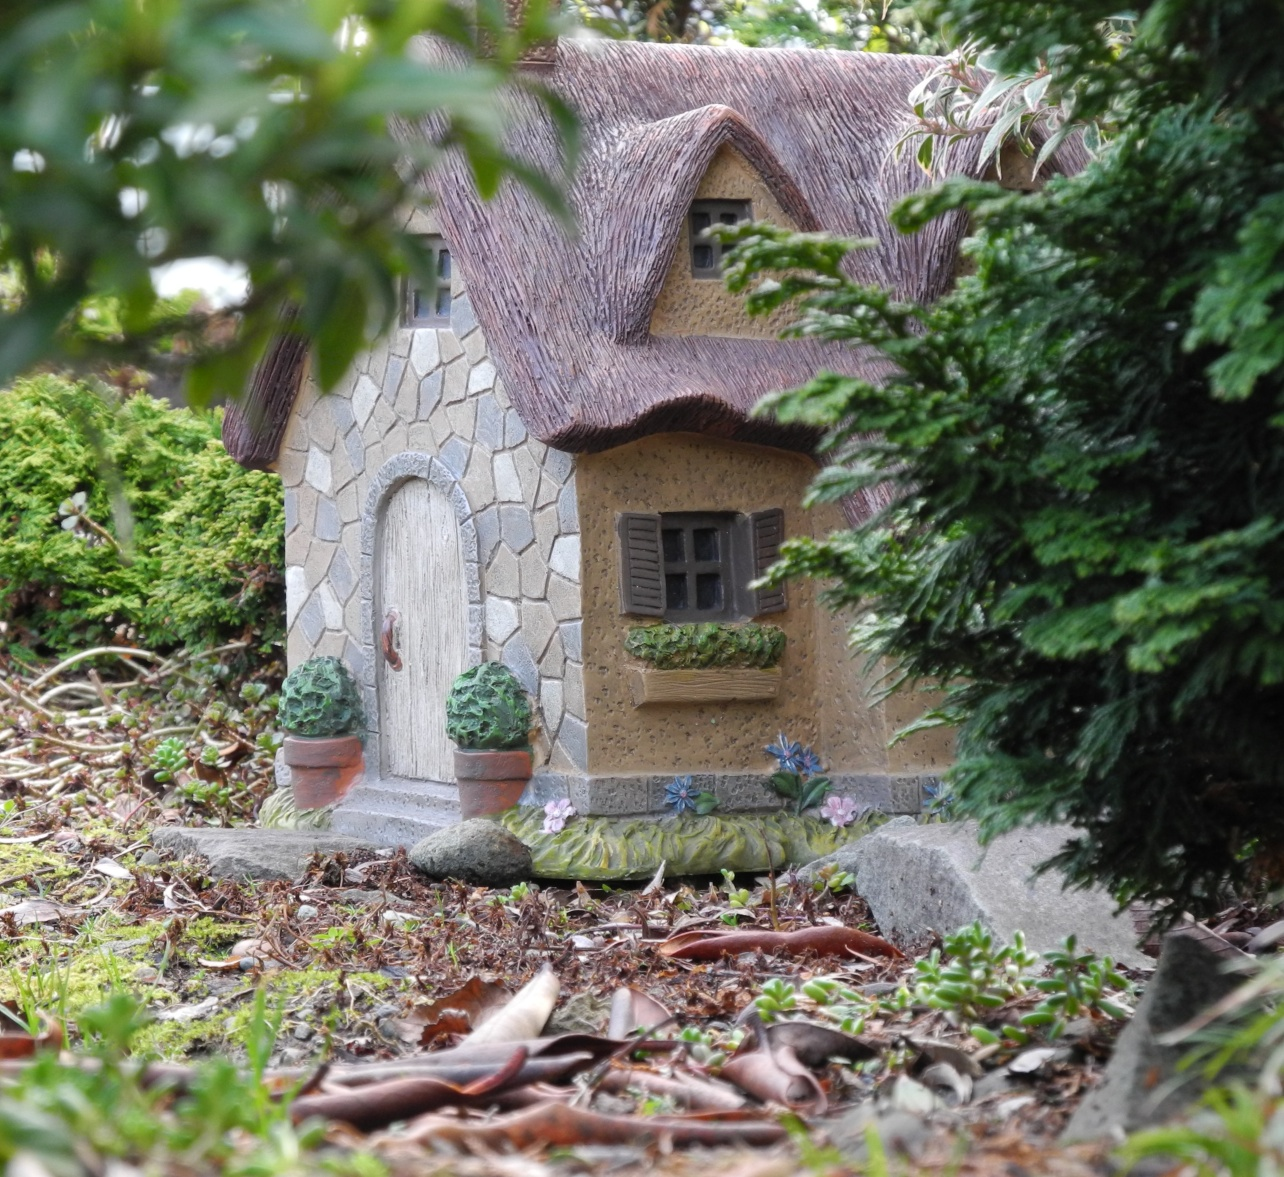 house-shaped garden decoration, made from ceramic or moulding clay, placed on a forest floor, diy fairy house, near green shrubs and branches